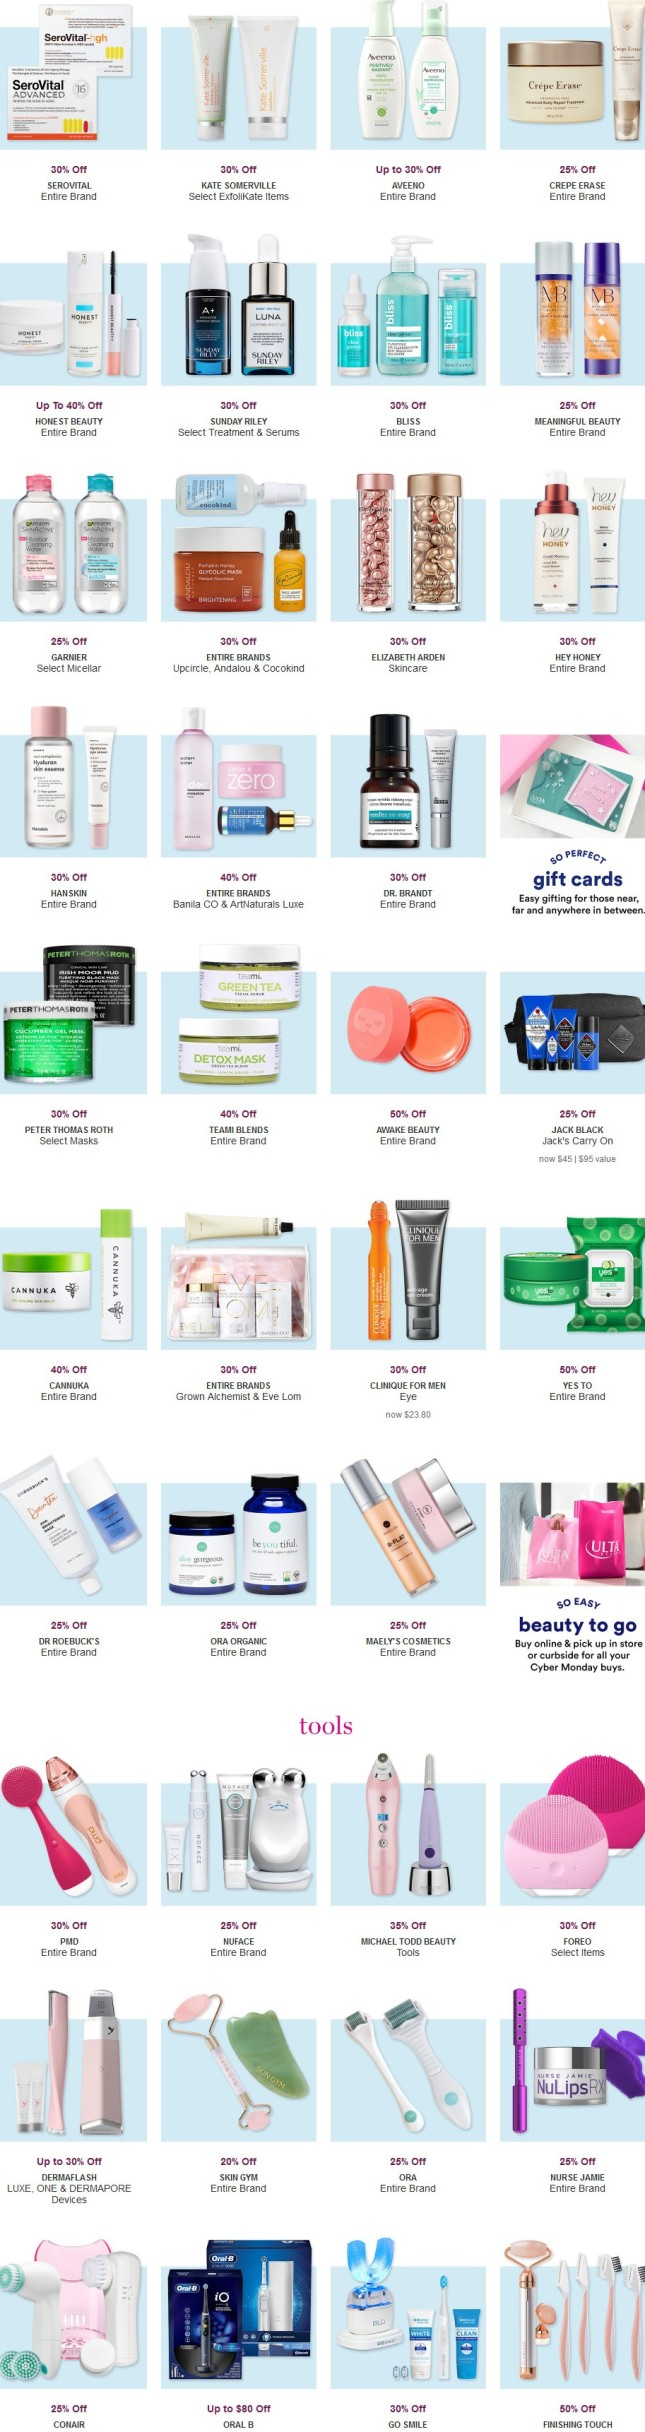 Screenshot_2020-11-29 Ulta Cyber Monday Skincare Bath Deals Ulta Beauty (3)